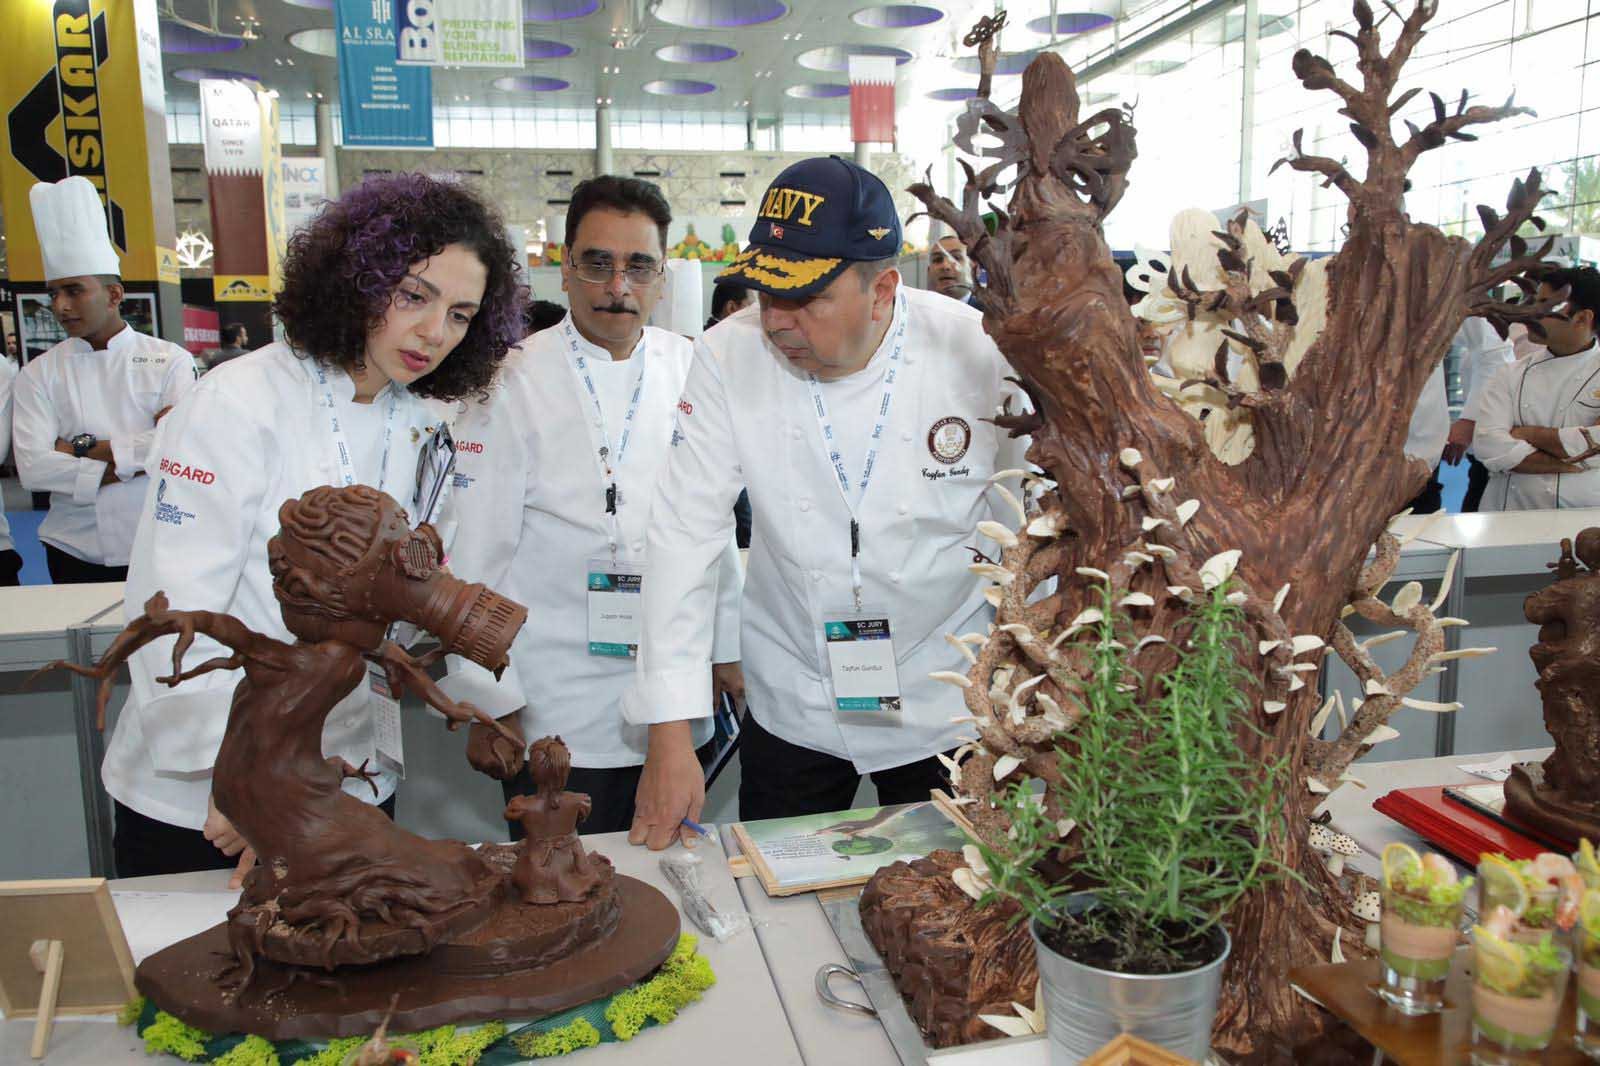 Sustainable destination tourism around the world takes spotlight at Hospitality Qatar Conference